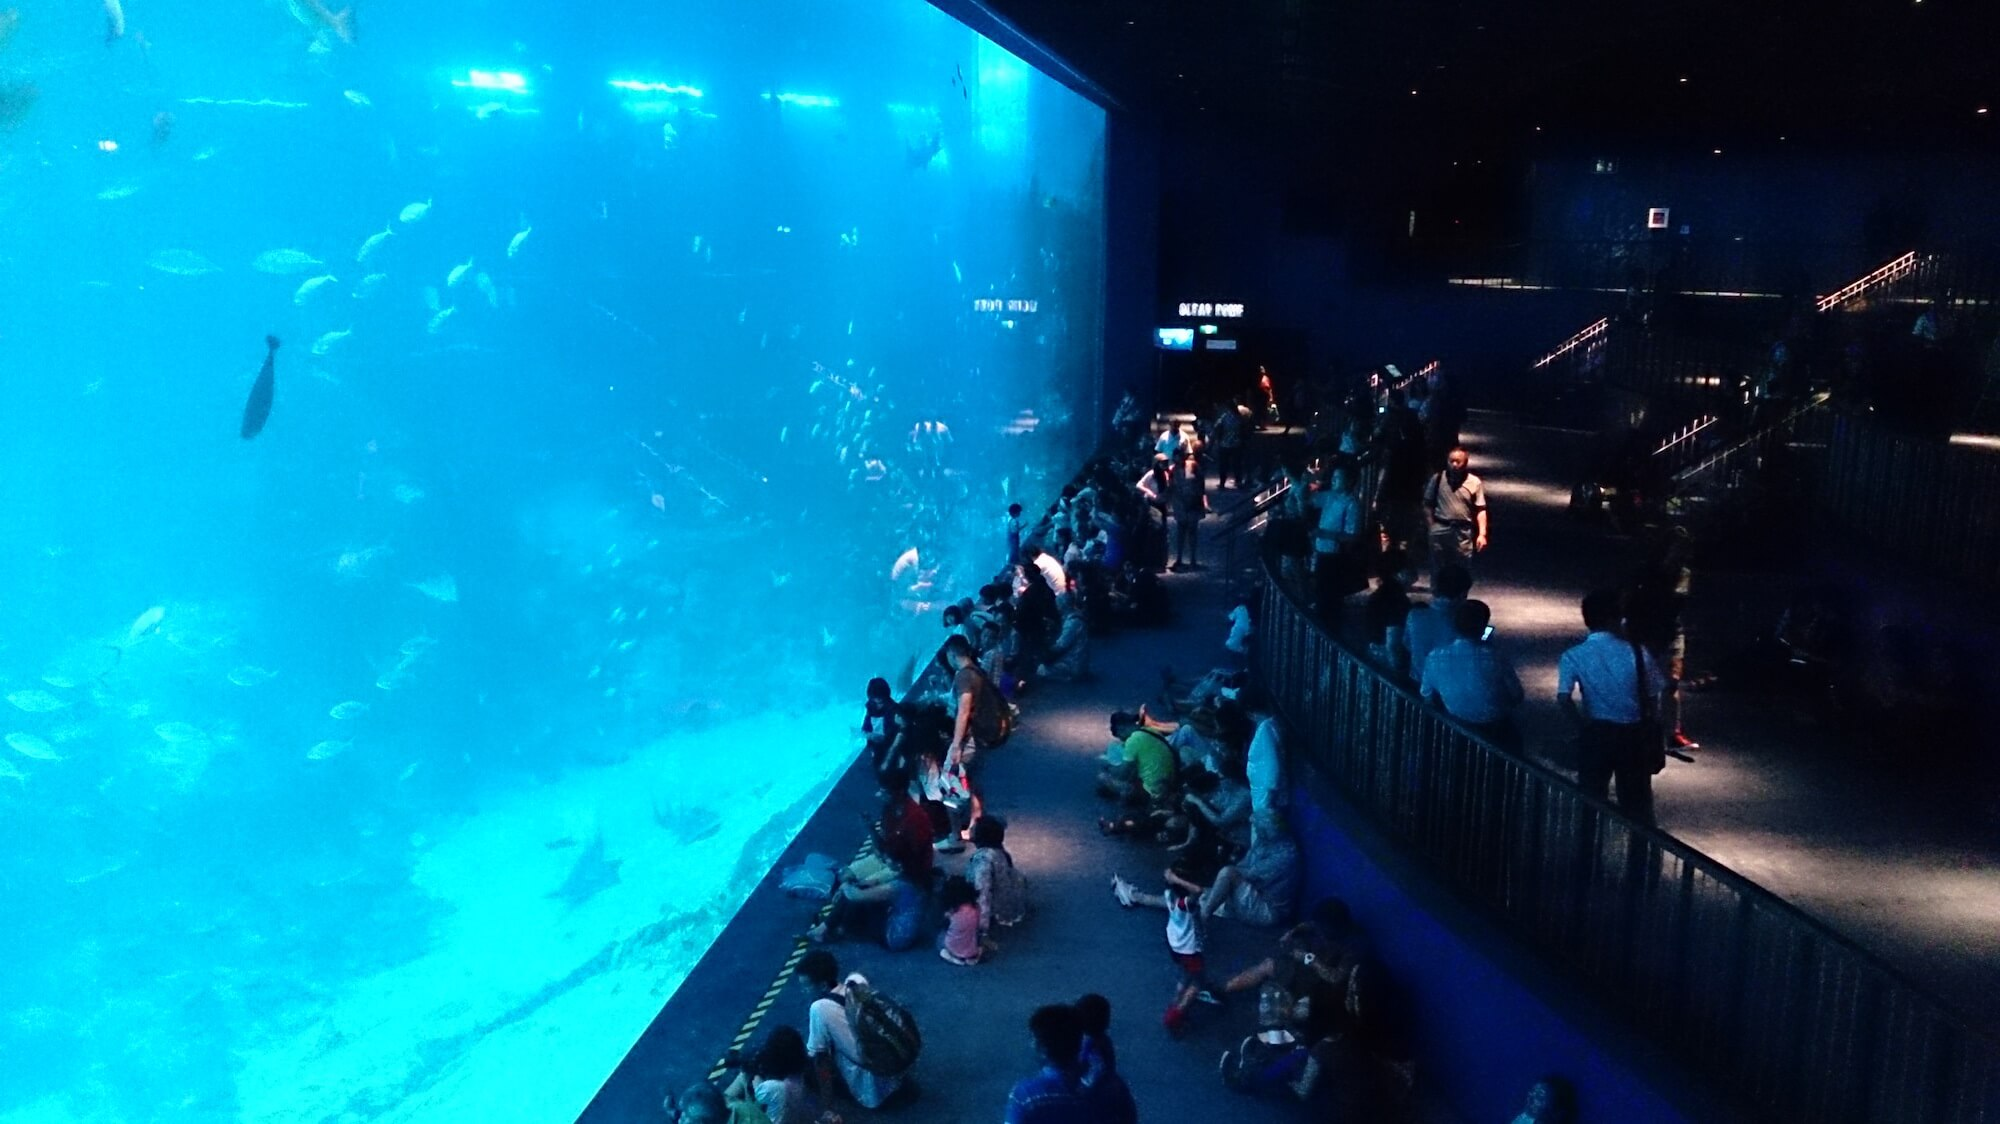 S.E.A. Aquarium Singapore. Source: Project Manhattan